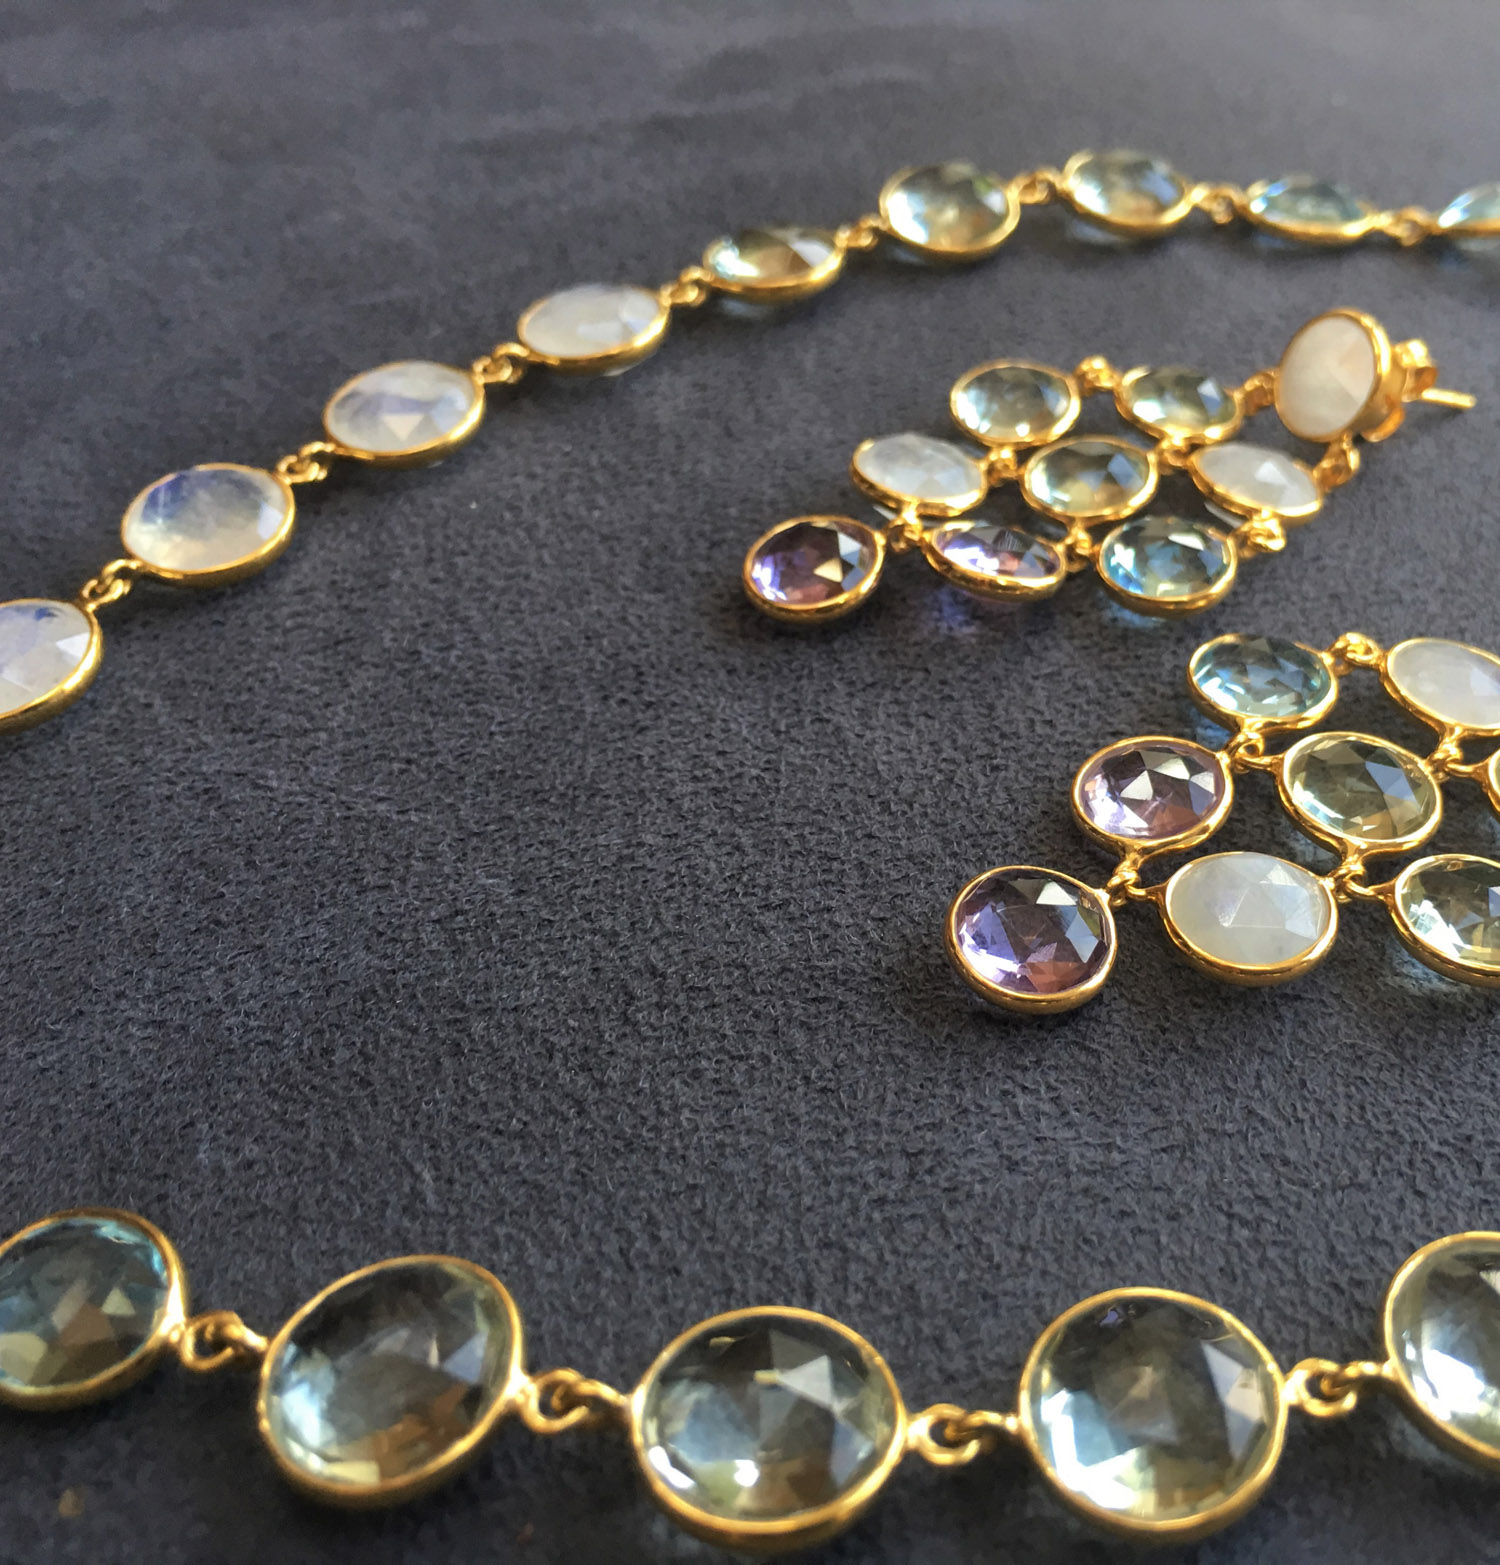 JEWELLERY = - PERFECTLY STYLED, THE BELLE OF THE BALL, THE ENVY OF YOUR FRIENDS, THE ONE WHOSE PICTURE GOES VIRAL... yes, we can do all of that and much more.